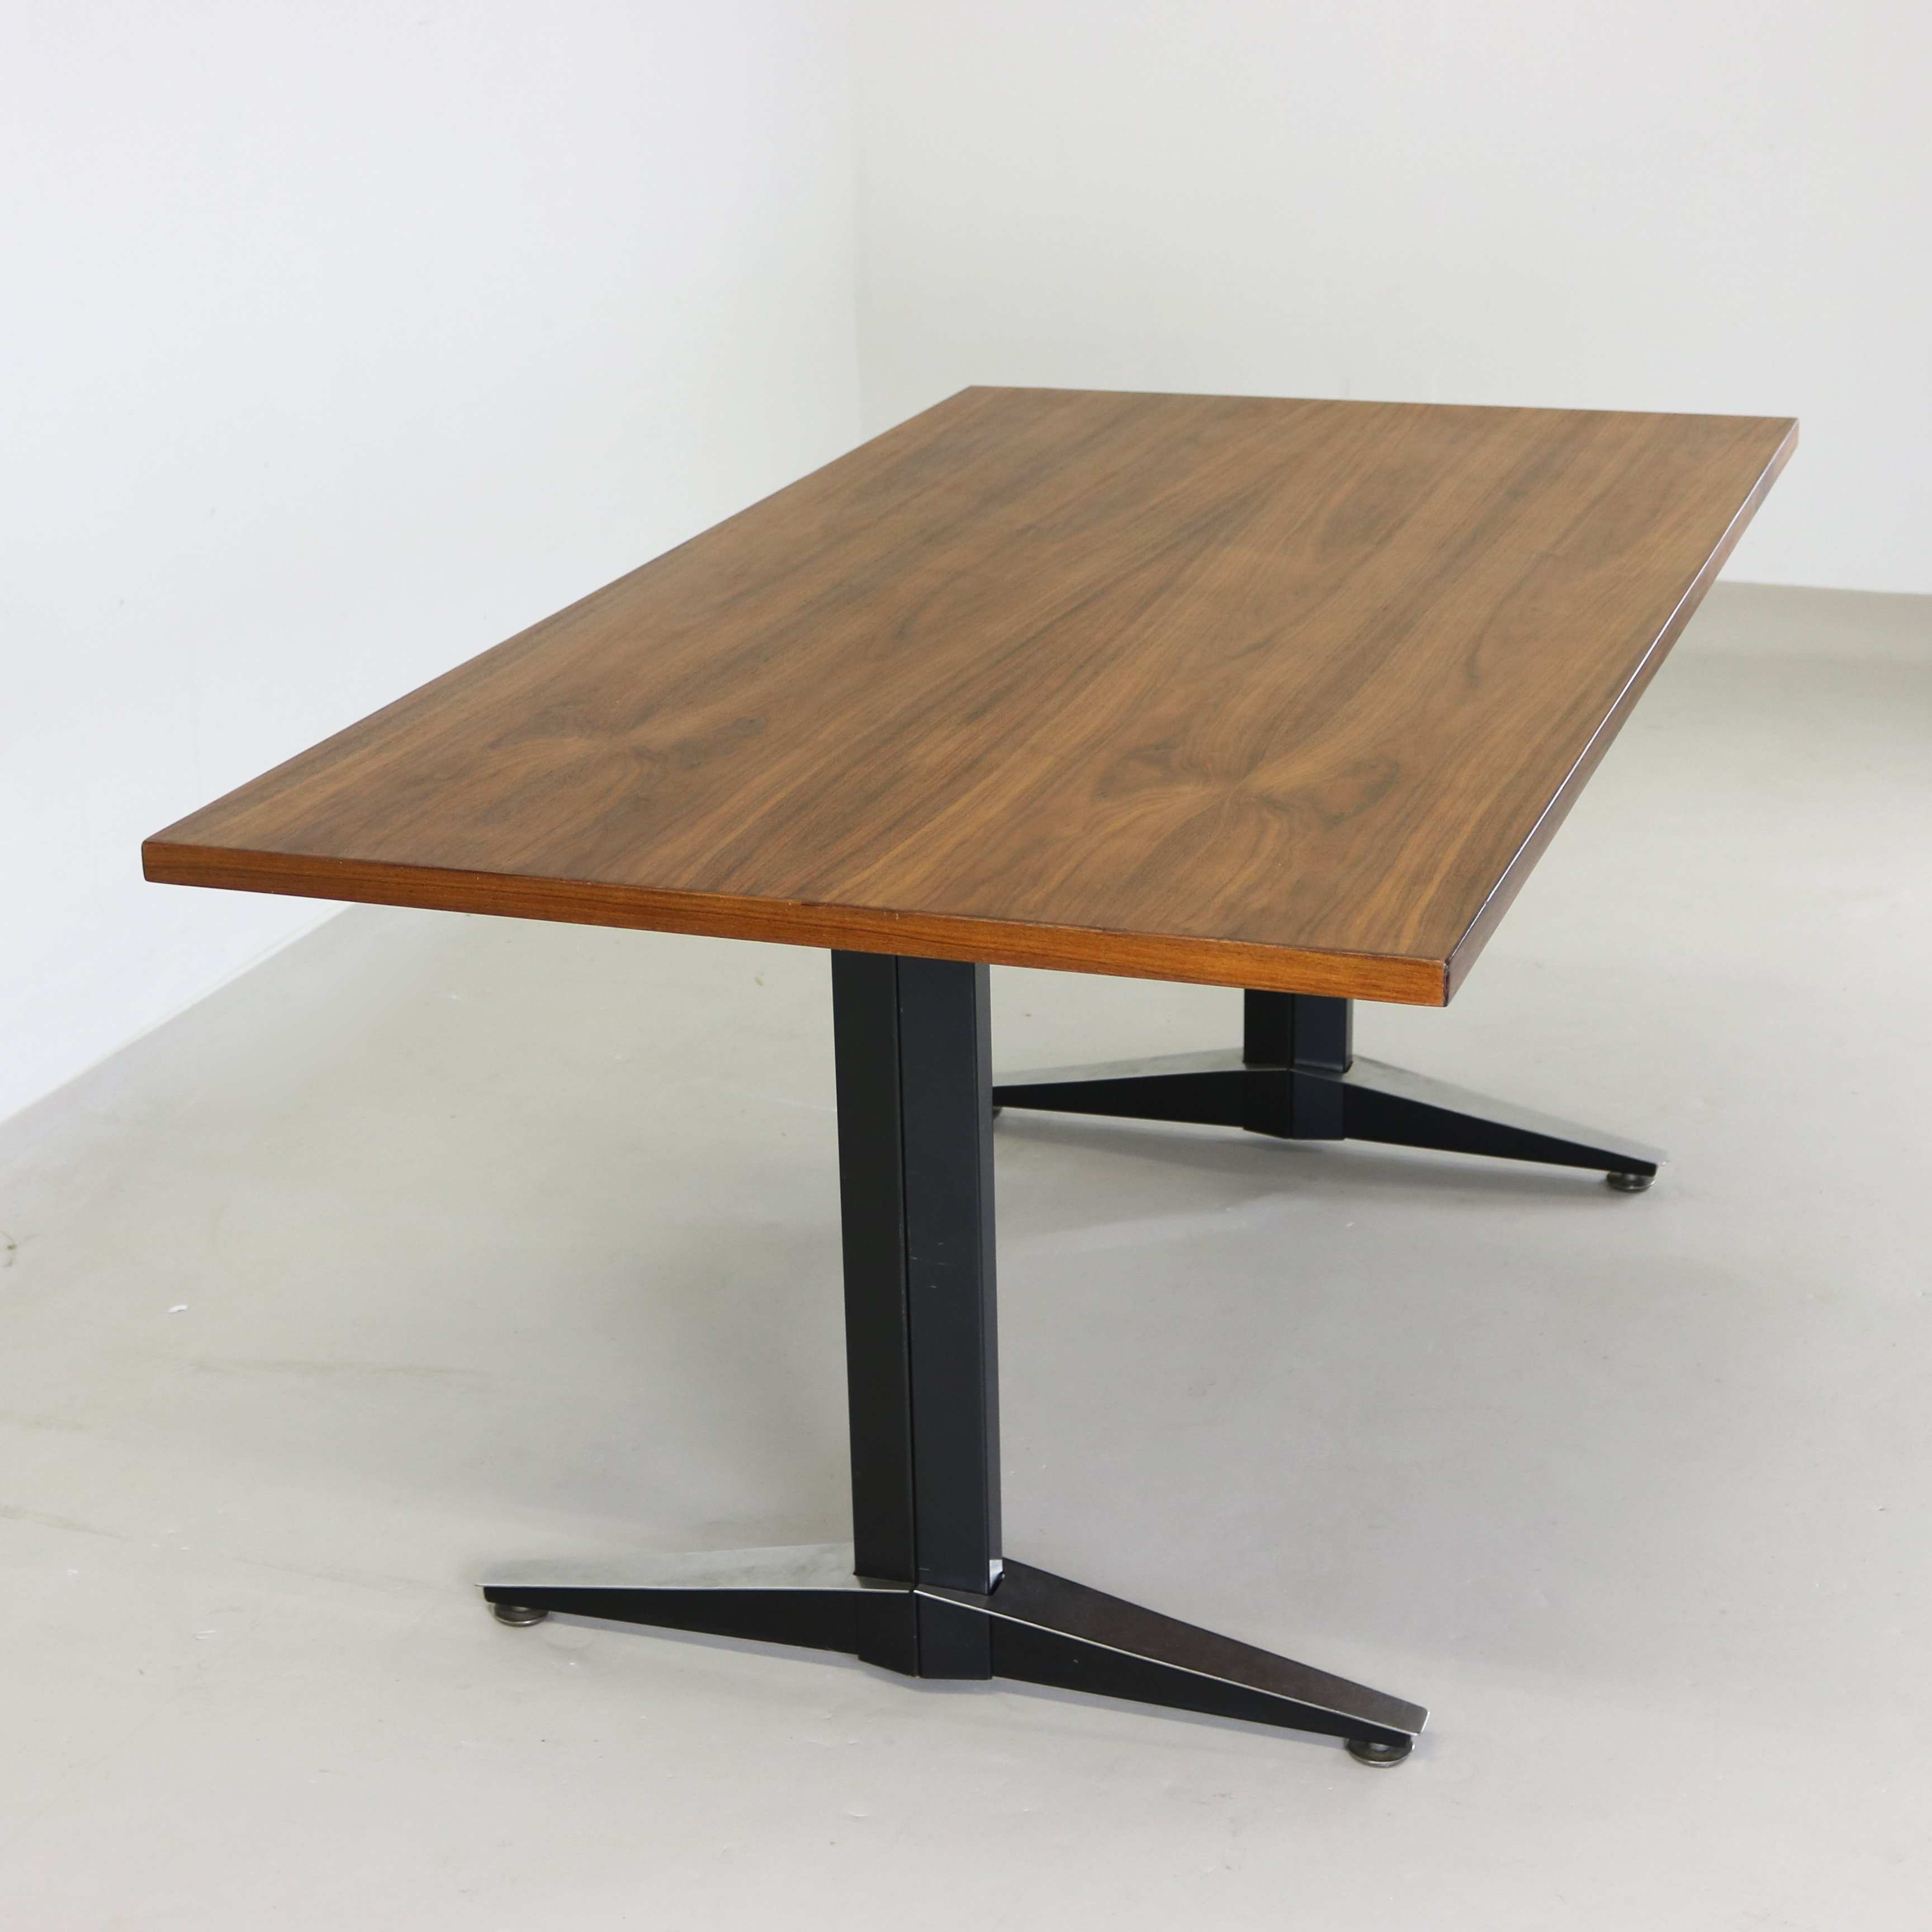 Work Table Design Industrial Design Working Table 1960s 71921